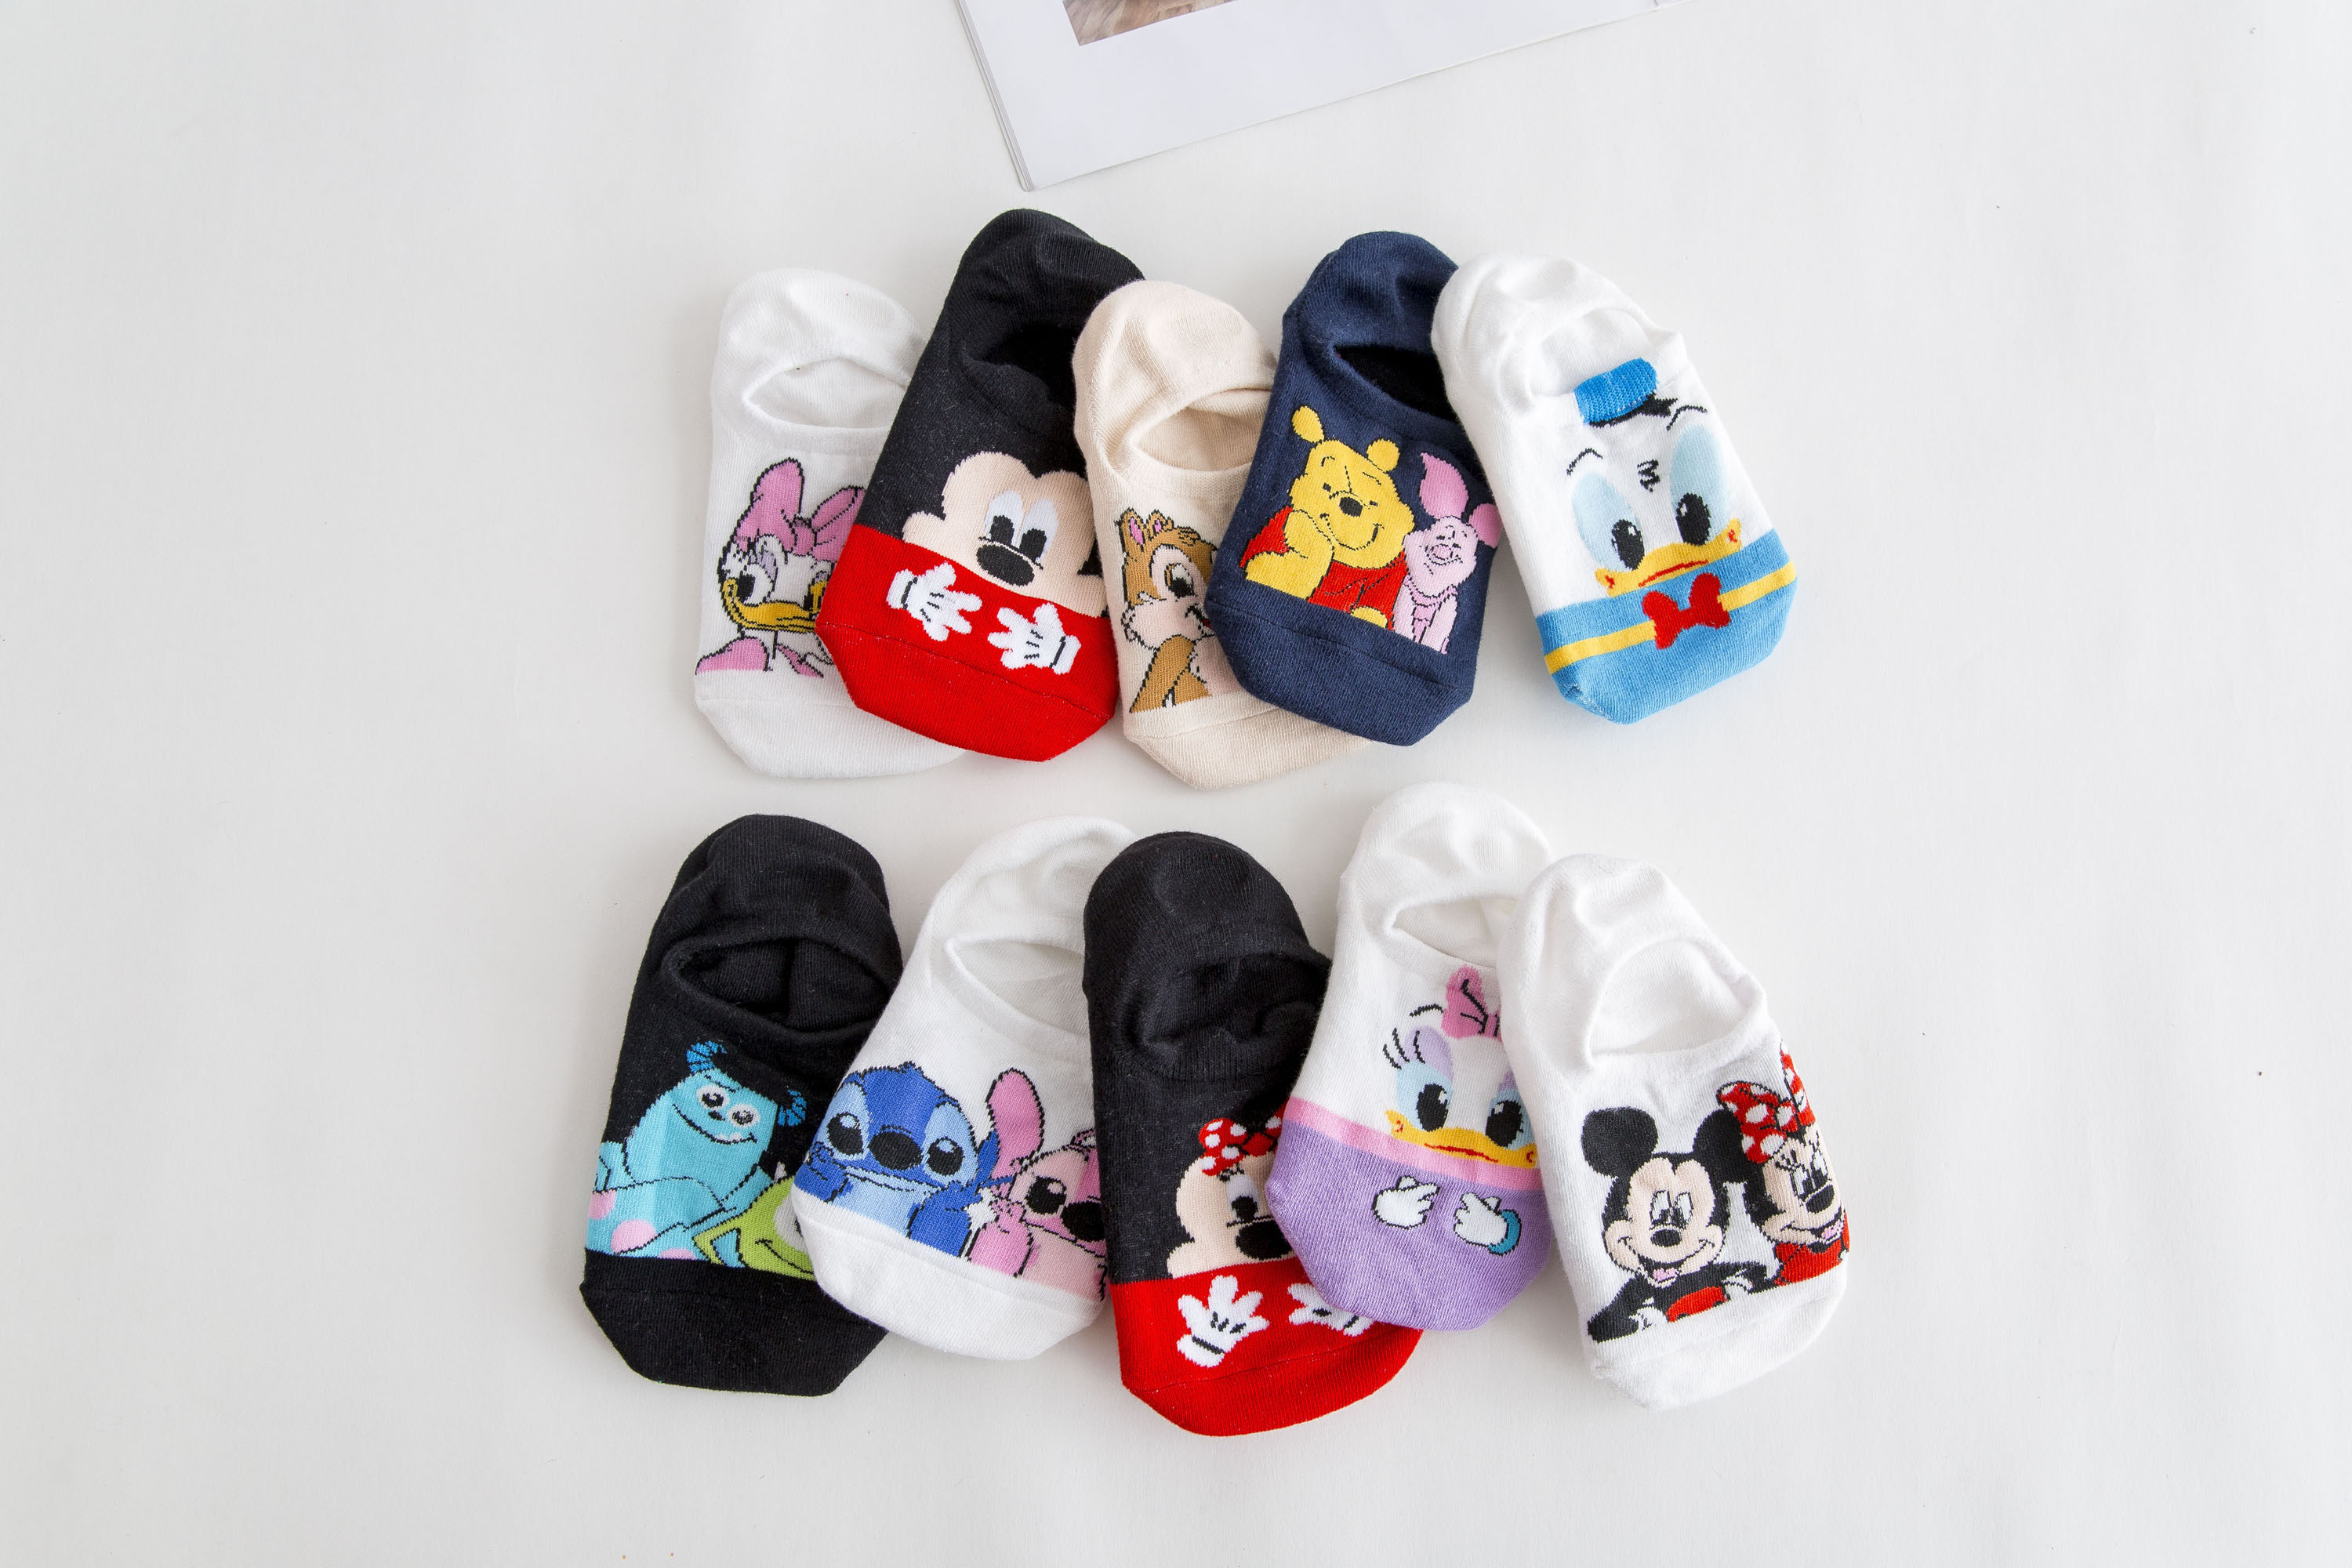 Haae1d2b8b994478799f8903fe0ddc265n - Disney 5 Pairs/Lot Casual Cute women Scoks Cartoon animal Mickey Mouse Donald Duck invisible ankle Socks Cotton happy Funny sock